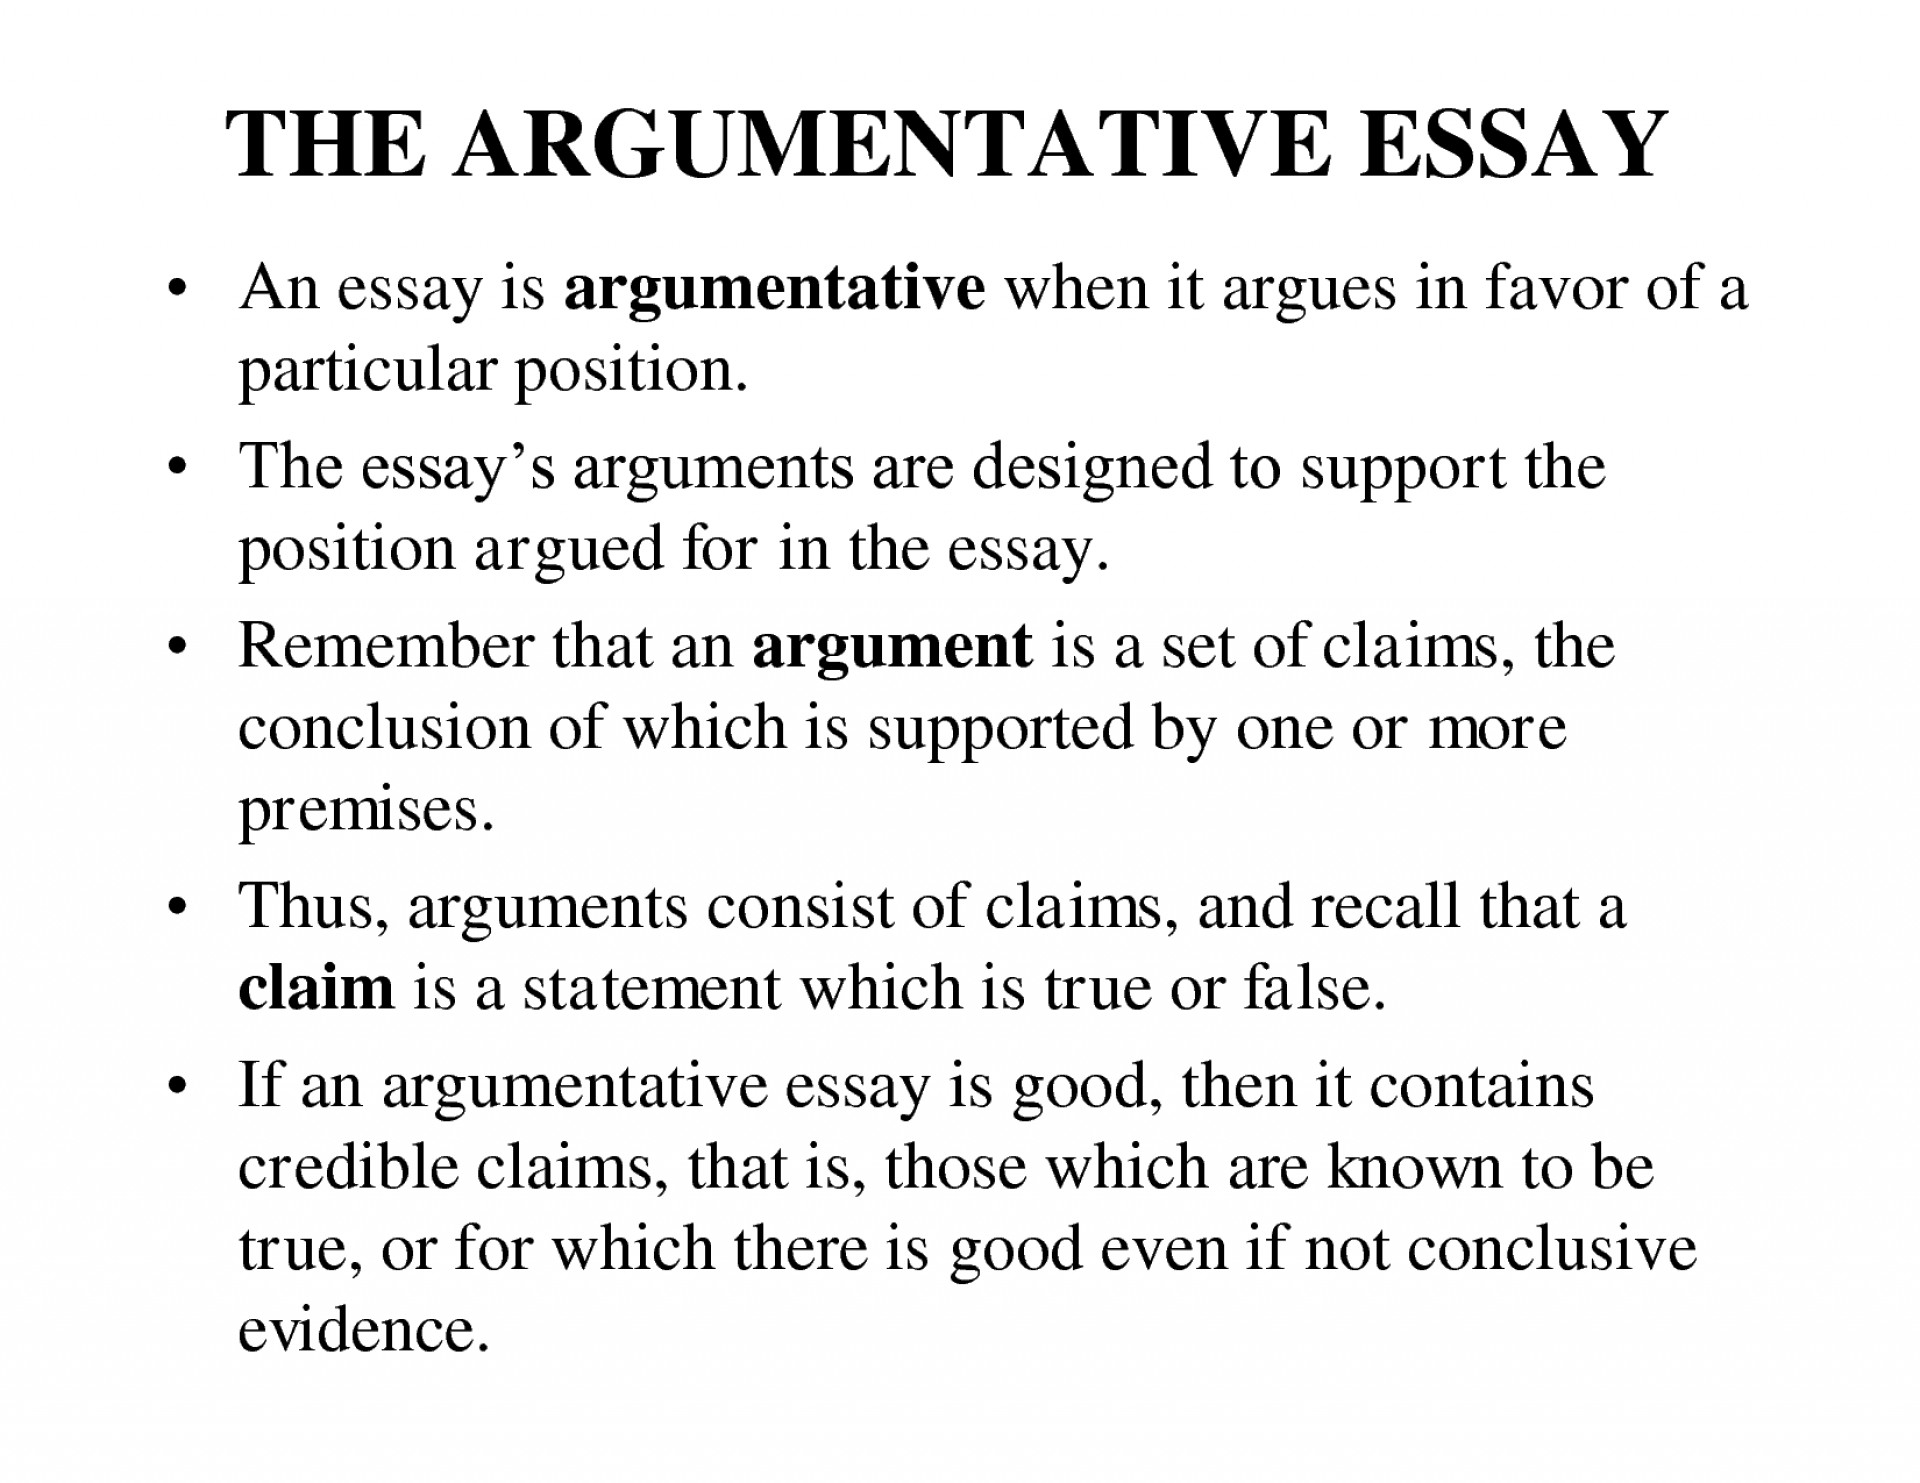 008 Jkmh24aso9 How To Begin An Argumentative Essay Stirring Write Ap Lang Step By Pdf 1920